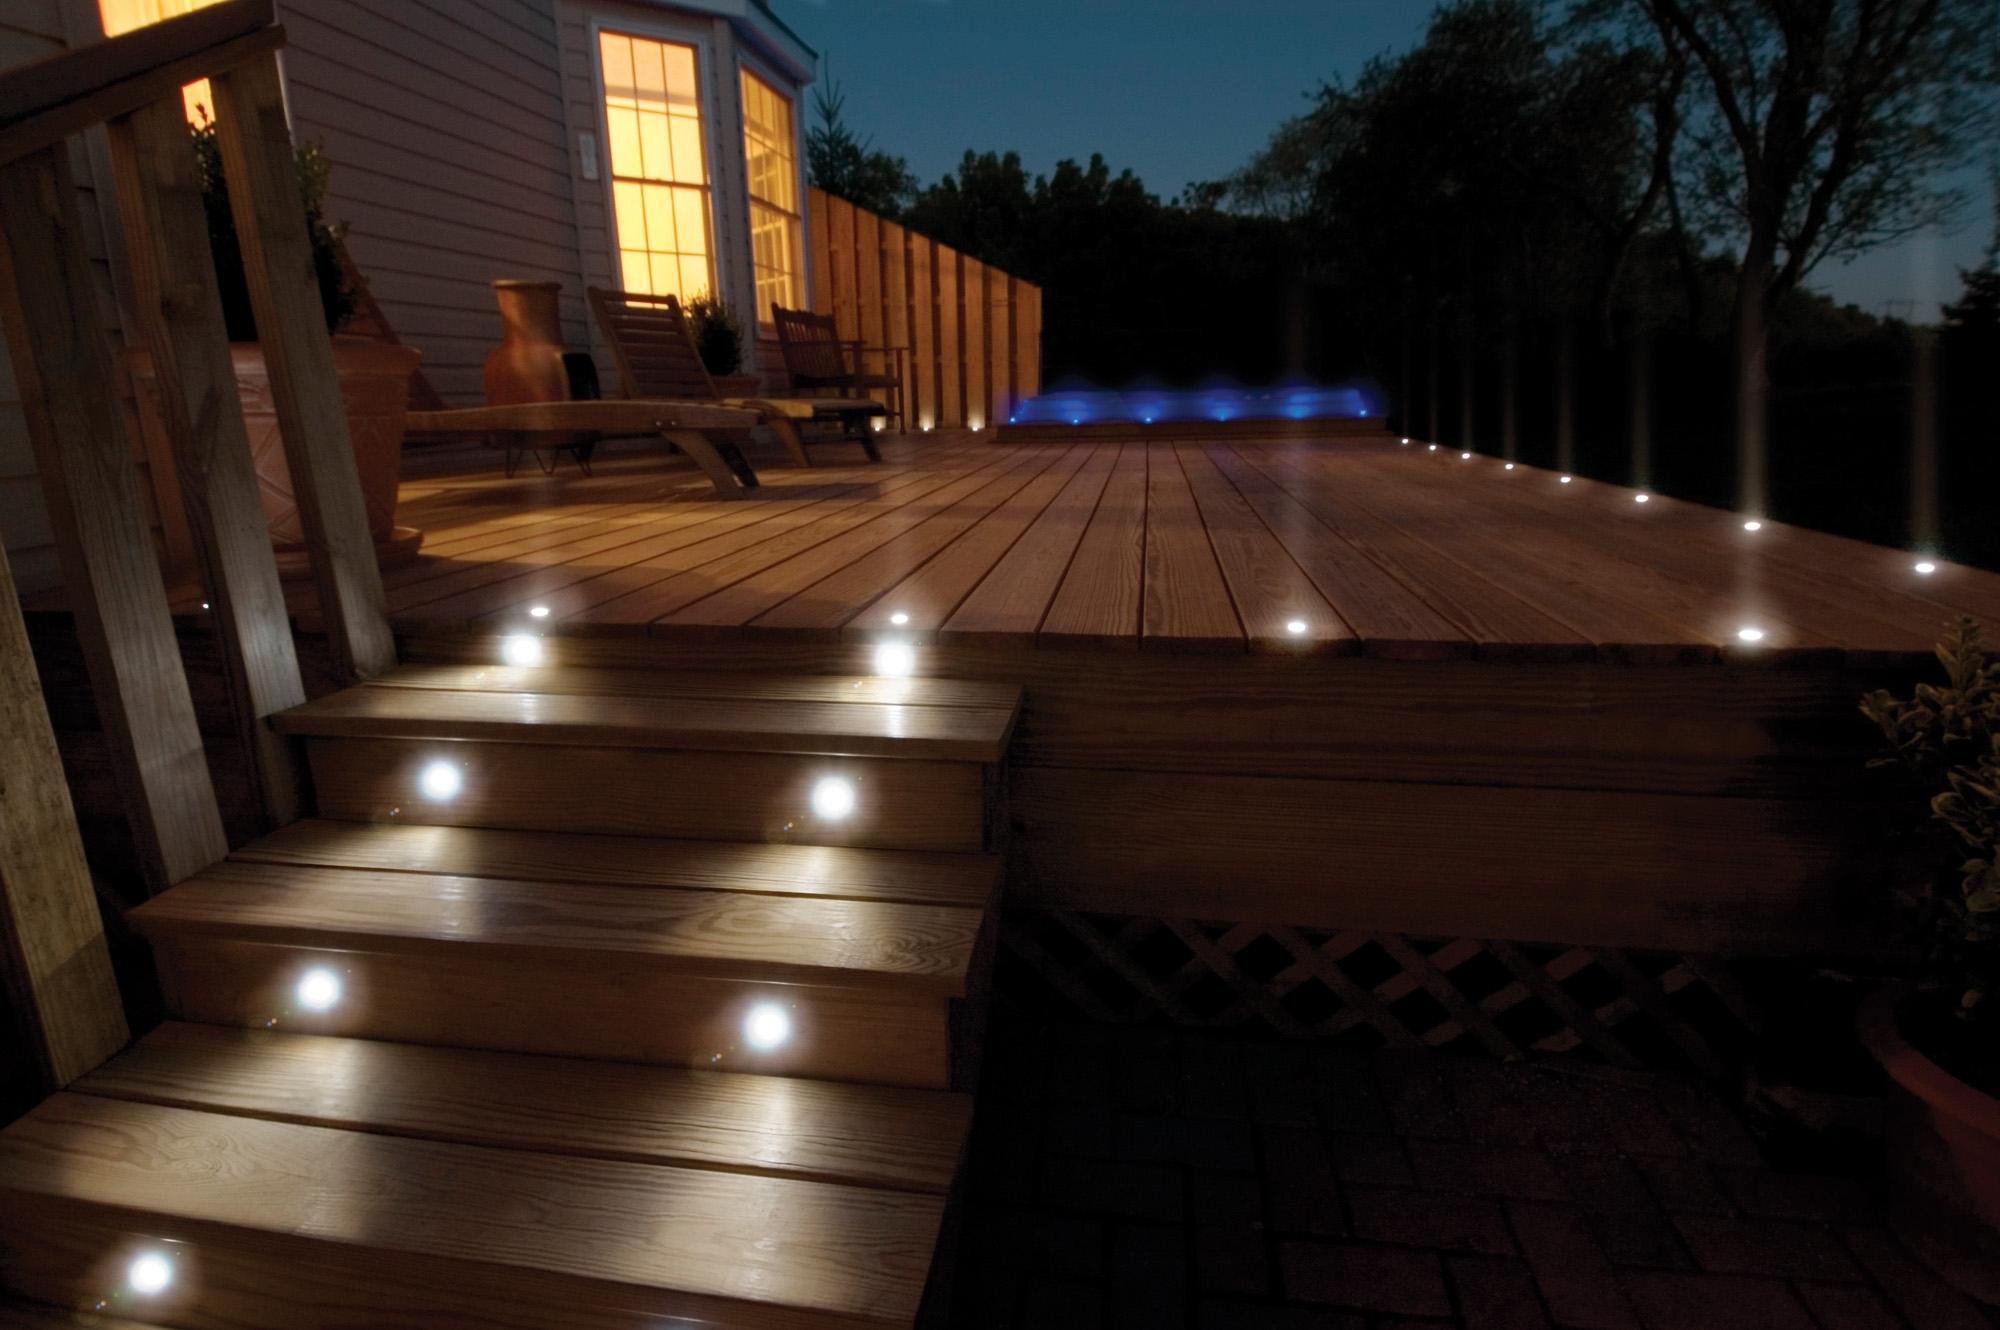 Led Light Design: Sophisticated Deck Led Lights For Outdoor Deck With Regard To Popular Modern Low Voltage Deck Lighting At Home Depot (View 7 of 20)